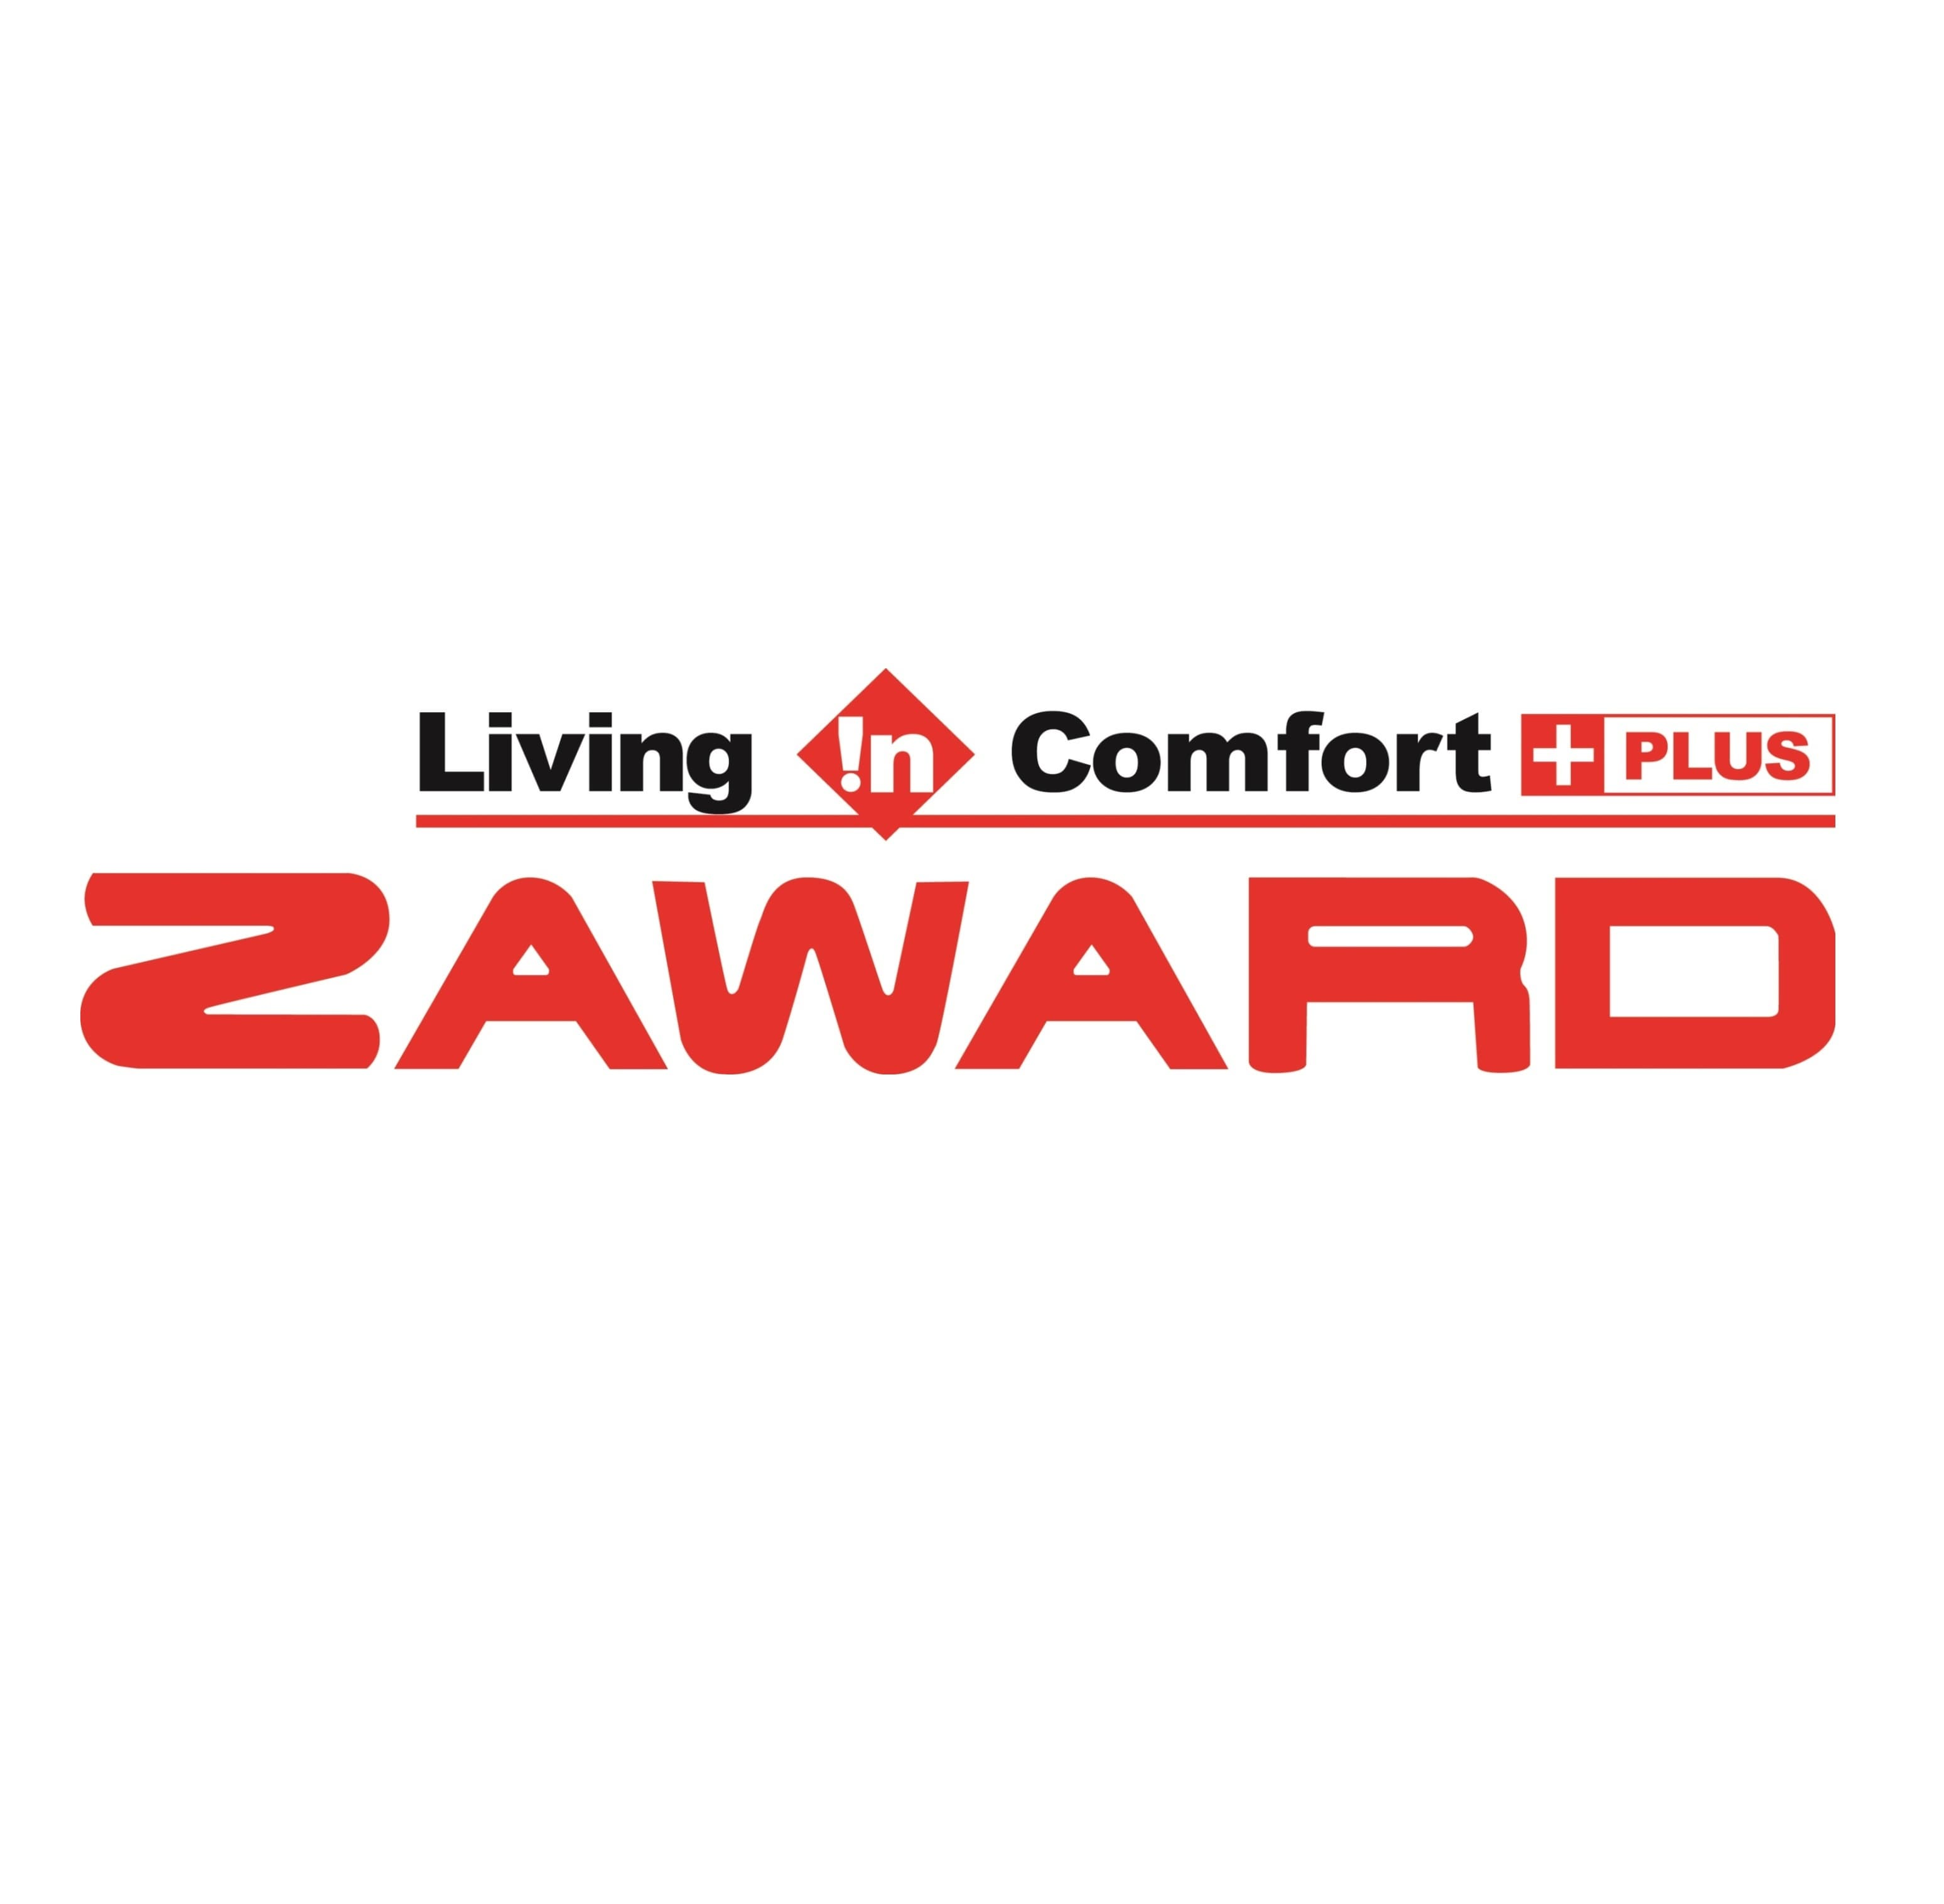 Zaward Corporation